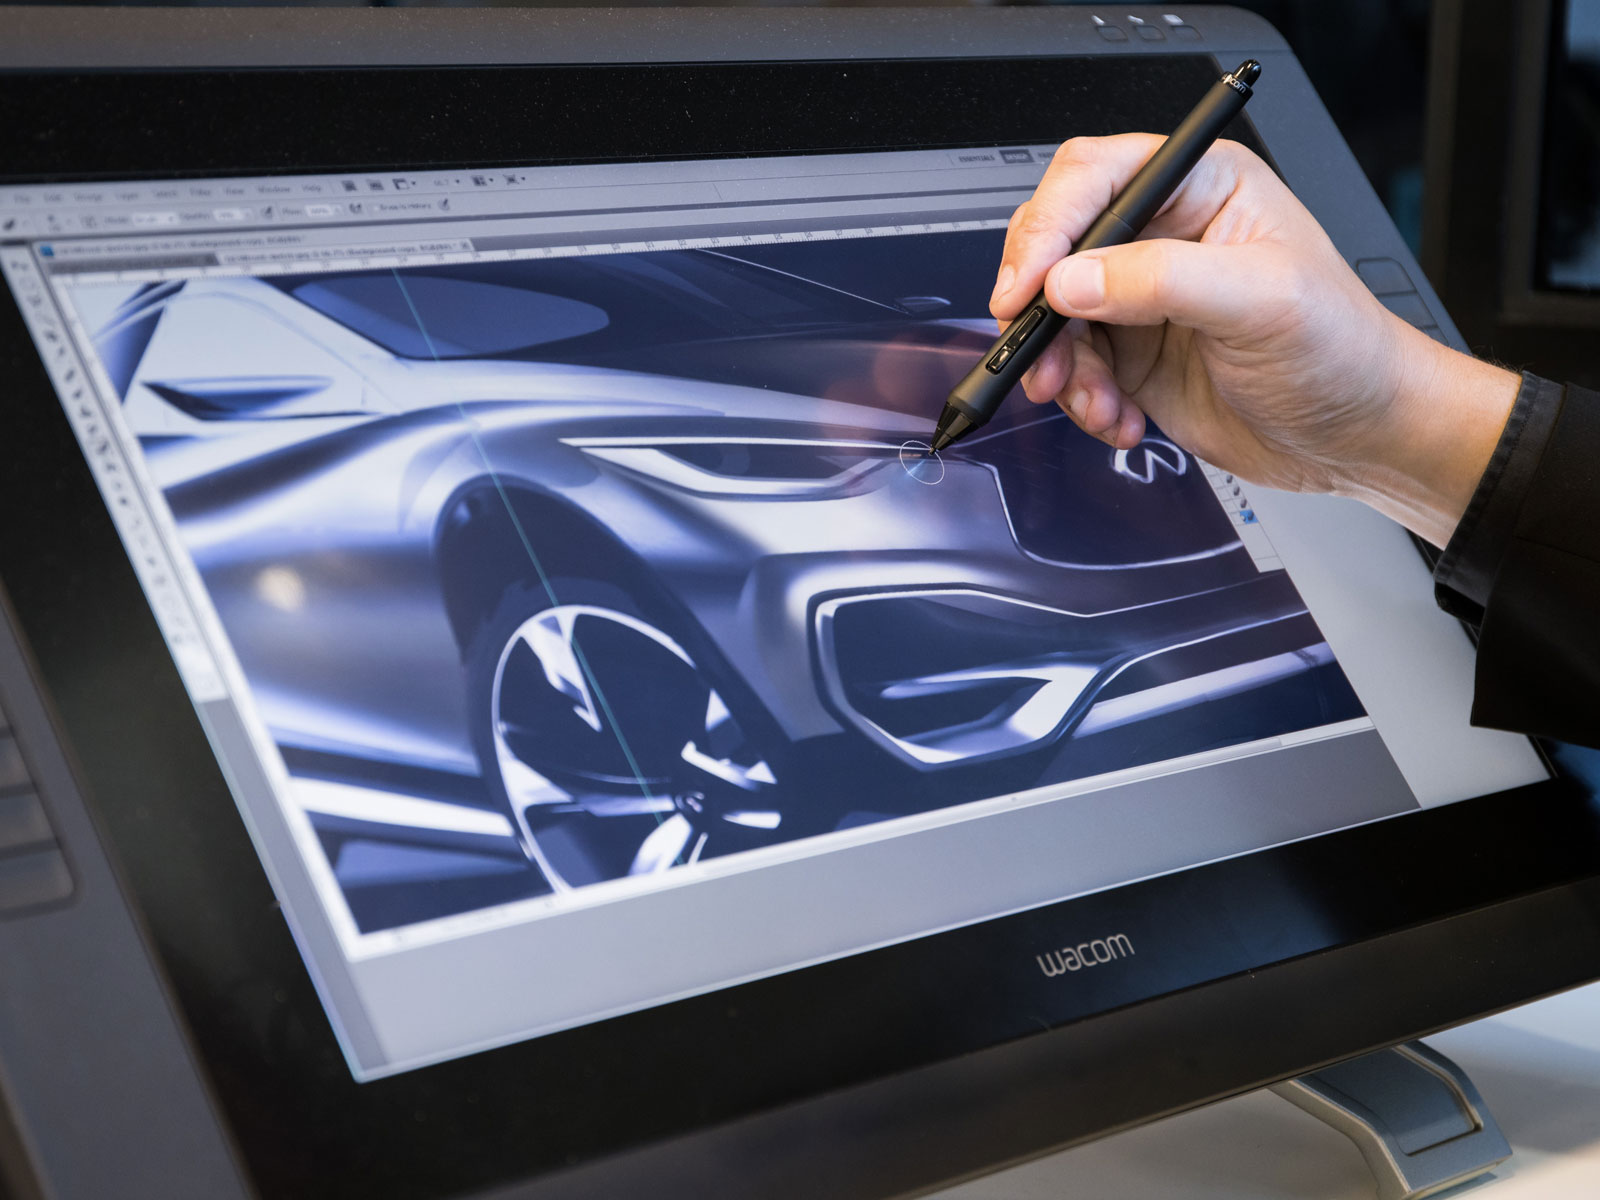 Color Design at Infiniti Design Sketching on the Wacom Cintiq